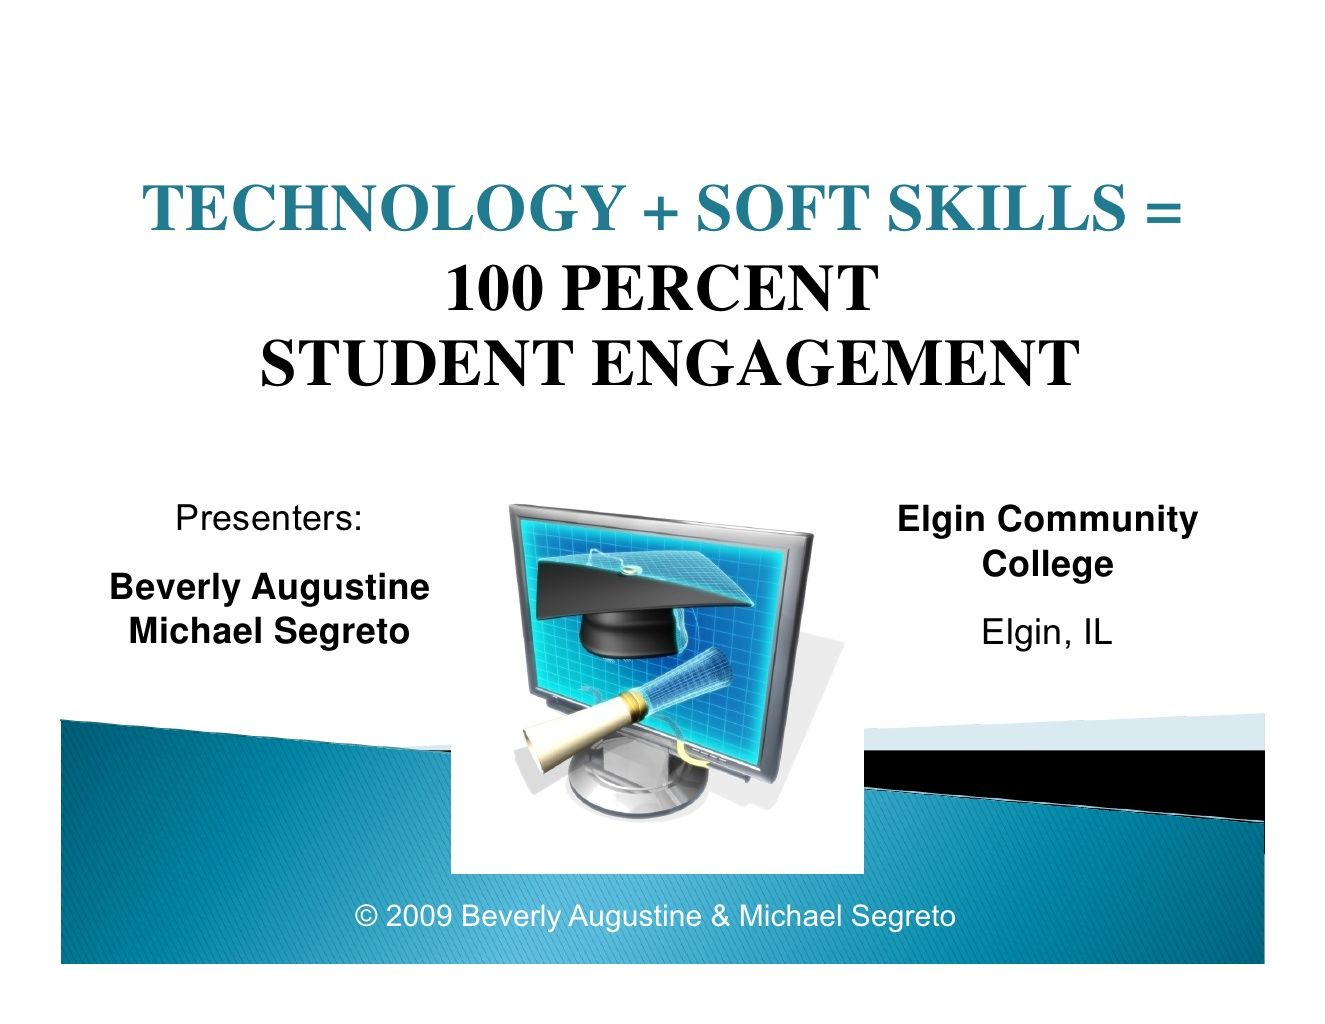 technology-soft-skills by aimkaam consultrainers via Slideshare